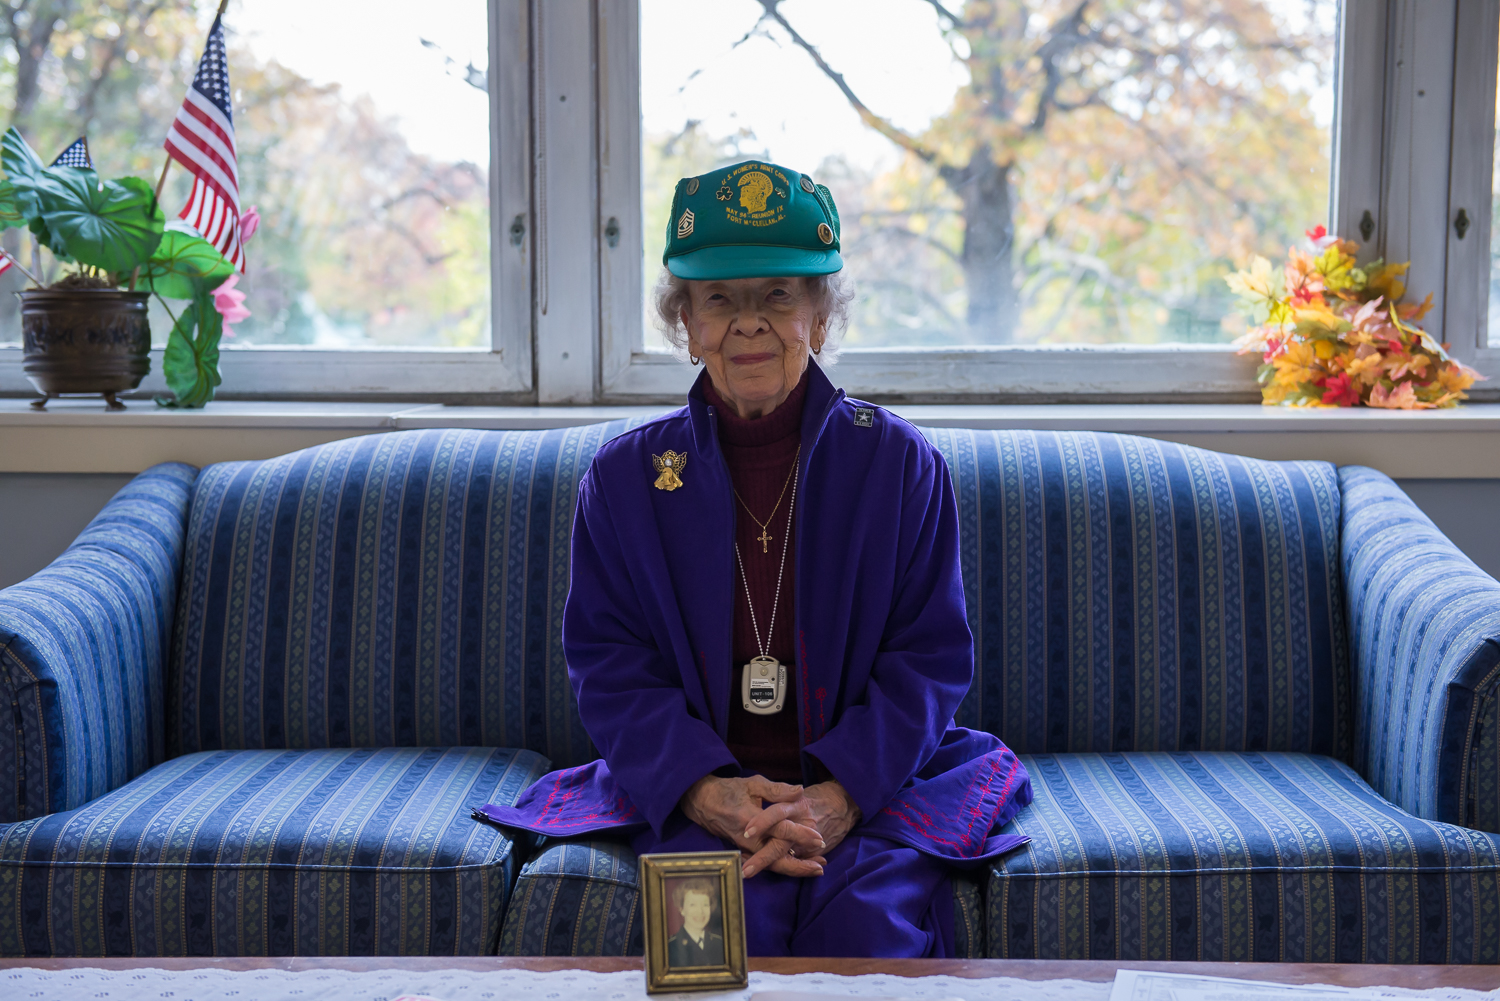 Elizabeth Lloyd poses for a portrait at the Armed Forces Retirement Home in Washington, DC. Lloyd, 90, joined the Women's Army Corps during World War II, then reenlisted after the war and ultimately retired from the Army in 1971.